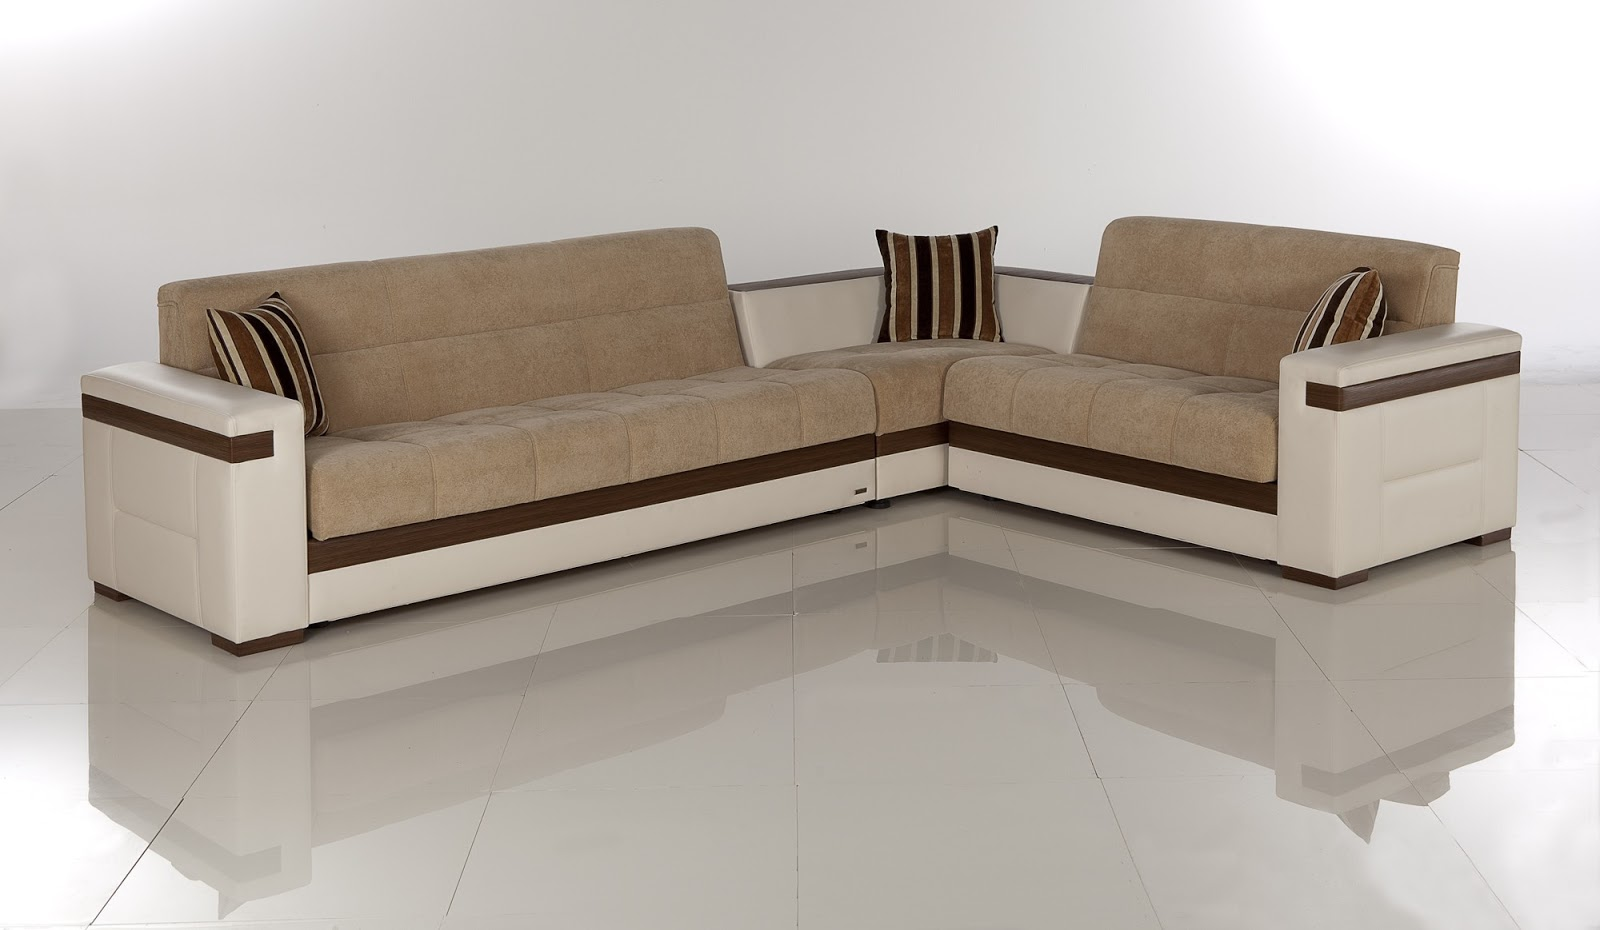 Sofa designs ideas home and design Designer loveseats